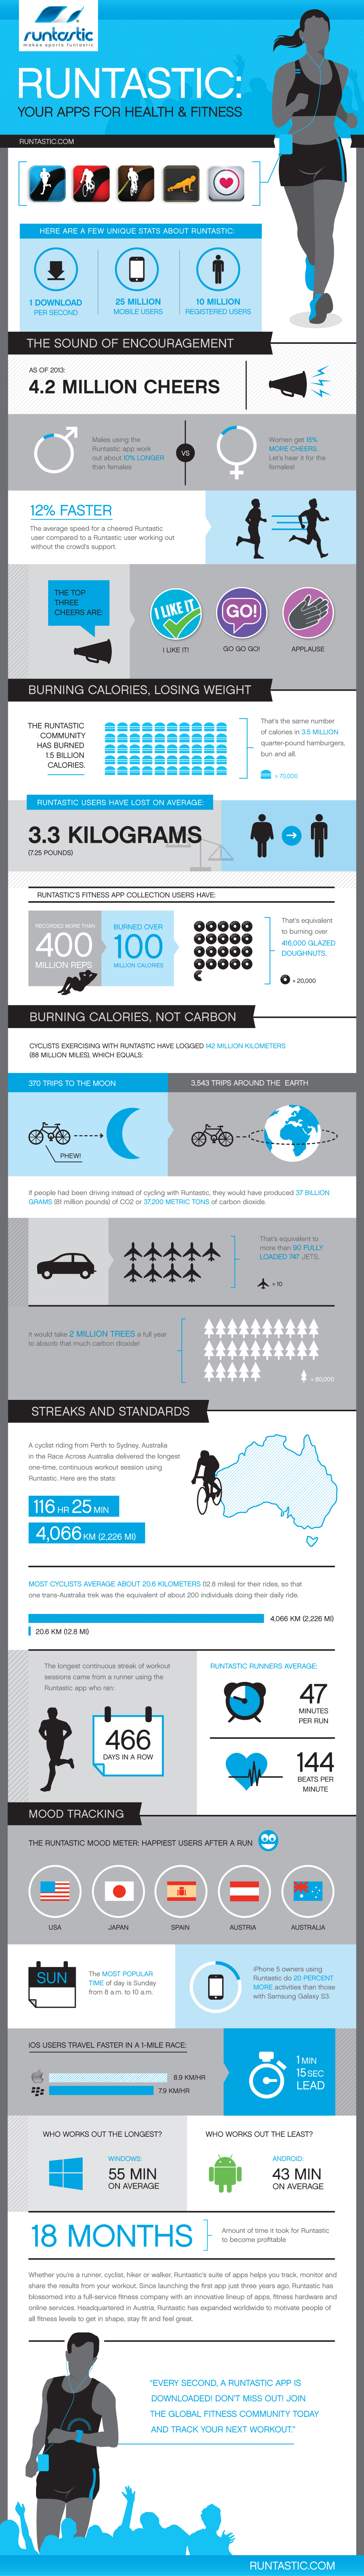 Runtastic-Infographic-Metric